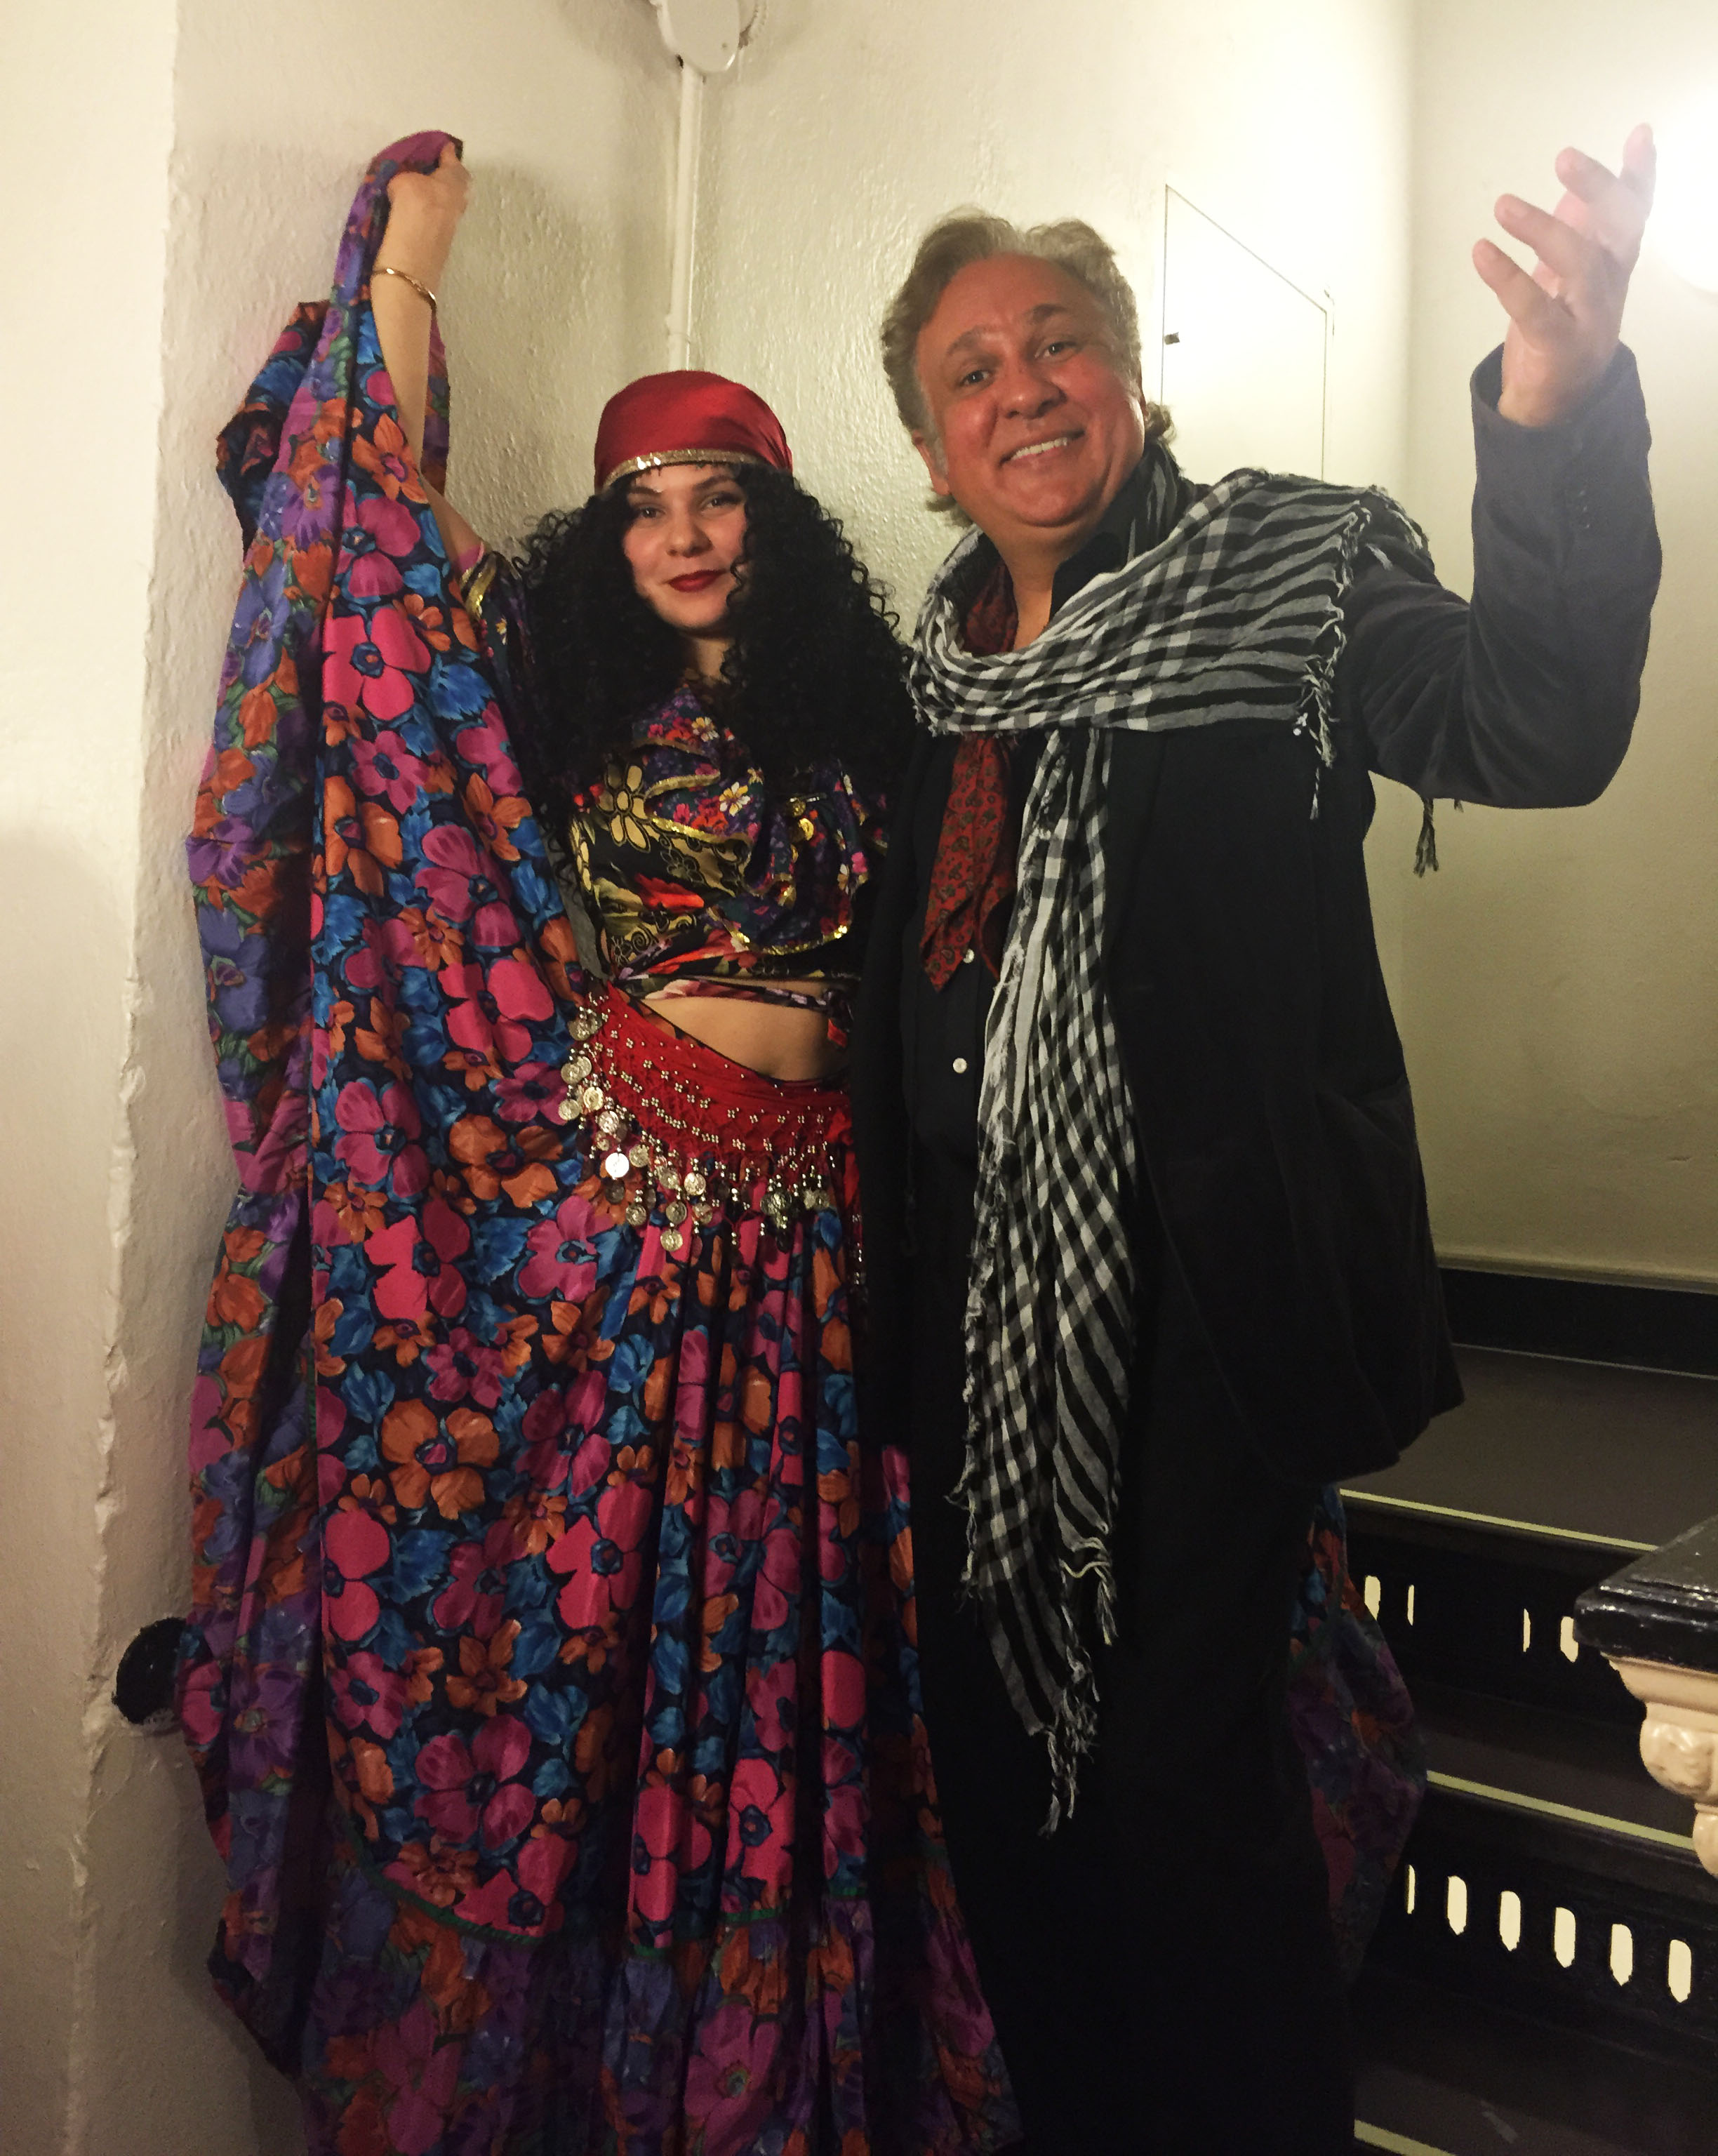 Moscow Gypsy Army, dancer Alisa Egorova, Vasily Yankovich-Romani, Carnegie Hall, New York City